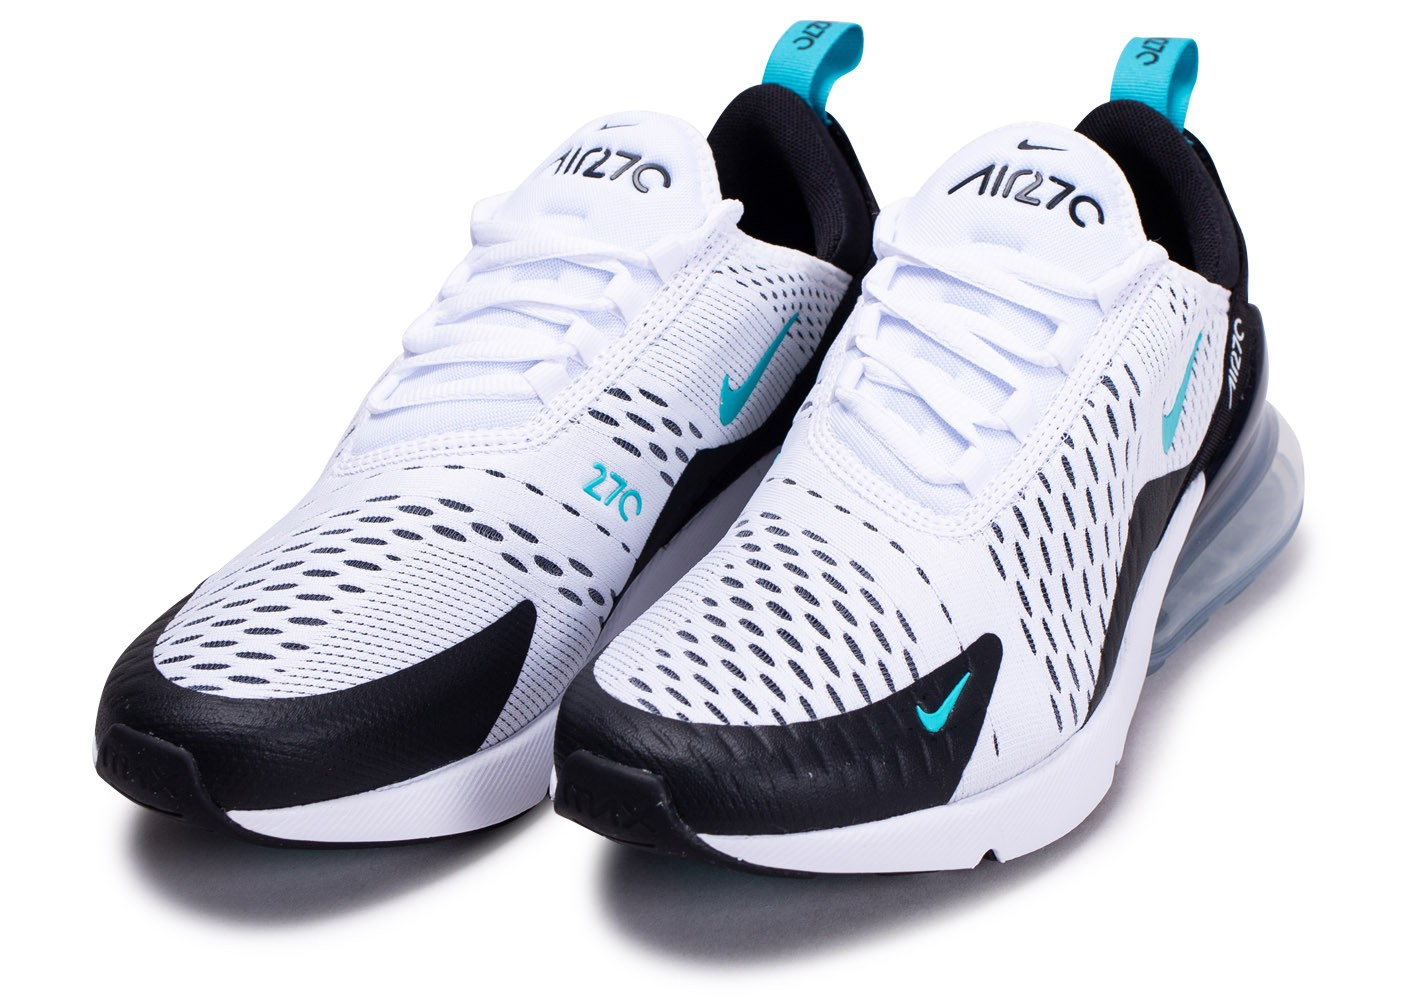 Nike Air Max 270 White Photo Blue AH8050 105 Chaussures Nike